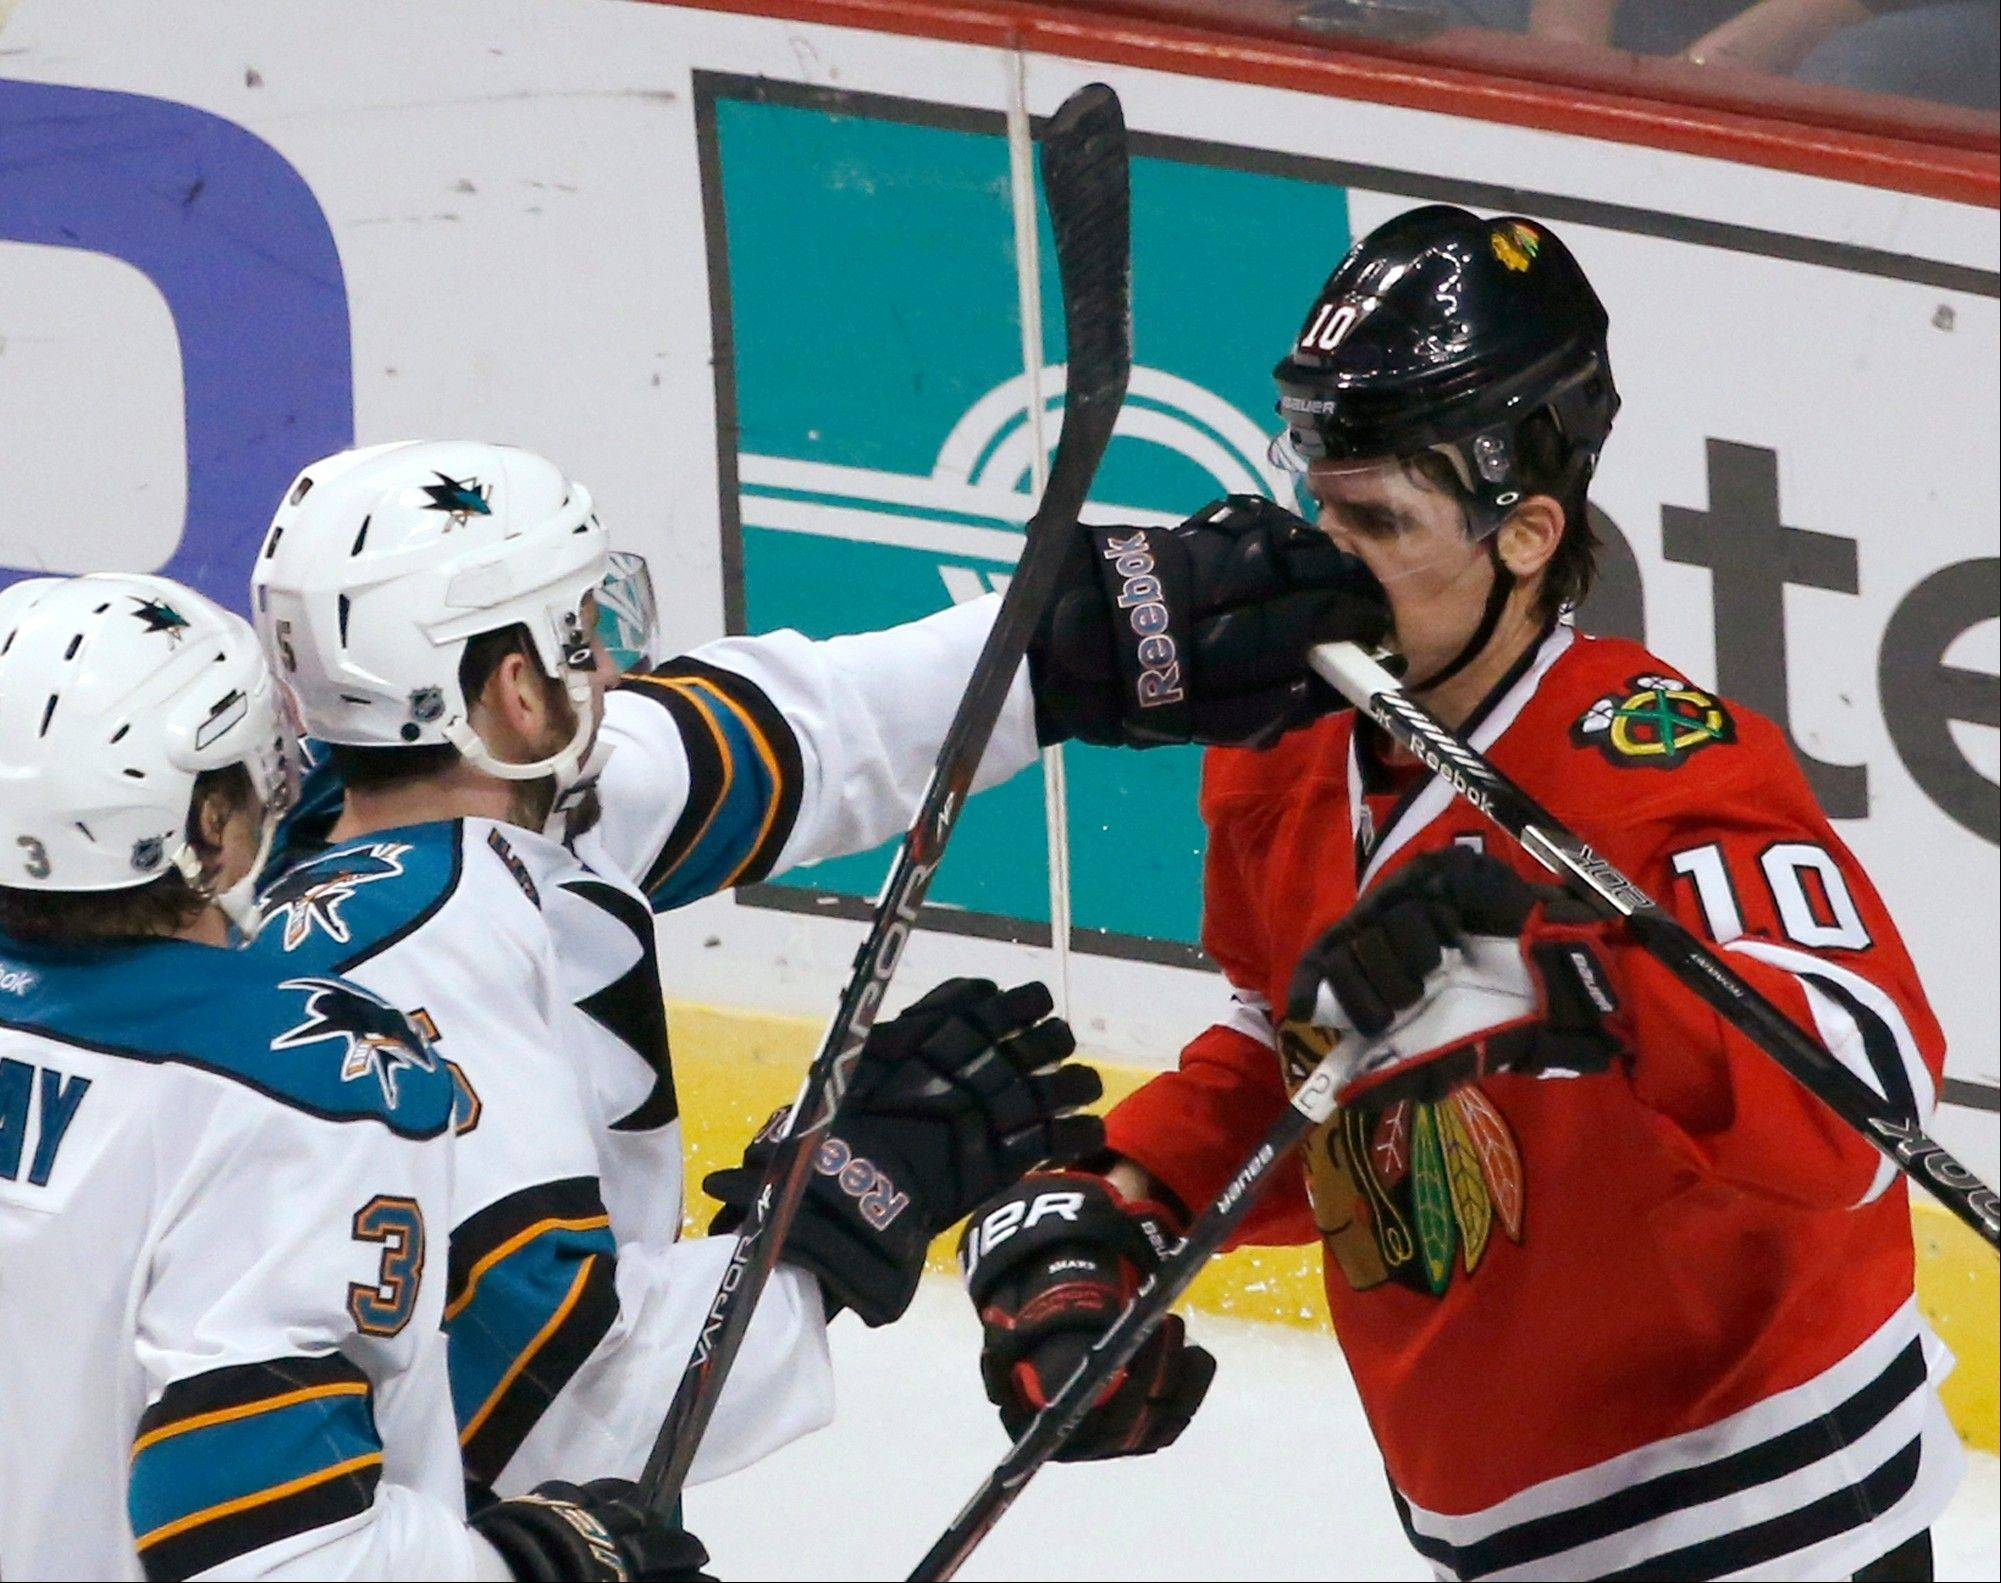 San Jose Sharks defenseman Jason Demers (5) take a jab at Chicago Blackhawks center Patrick Sharp (10) as Douglas Murray (3) watches during the second period of an NHL hockey game Friday, Feb. 15, 2013, in Chicago.